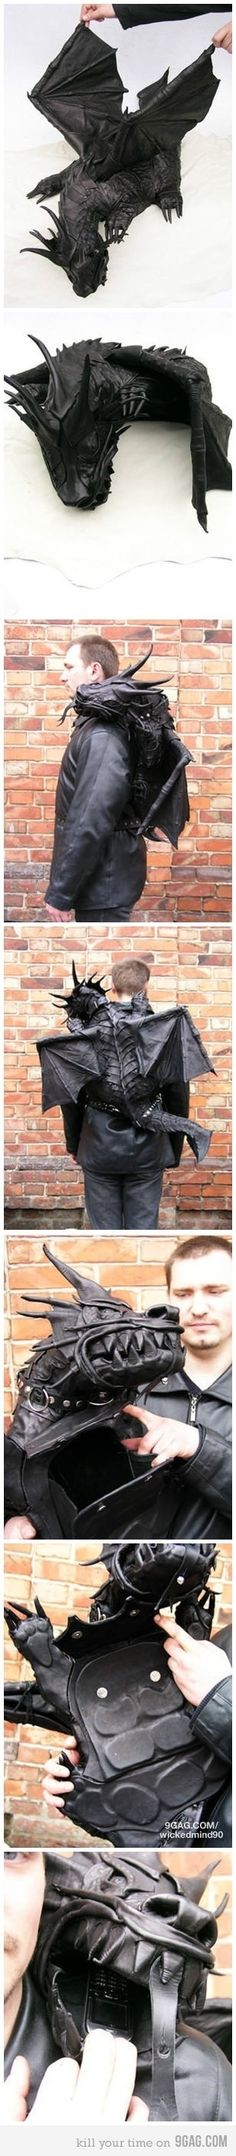 Awesome backpack is awesome. Dragon Backpack!